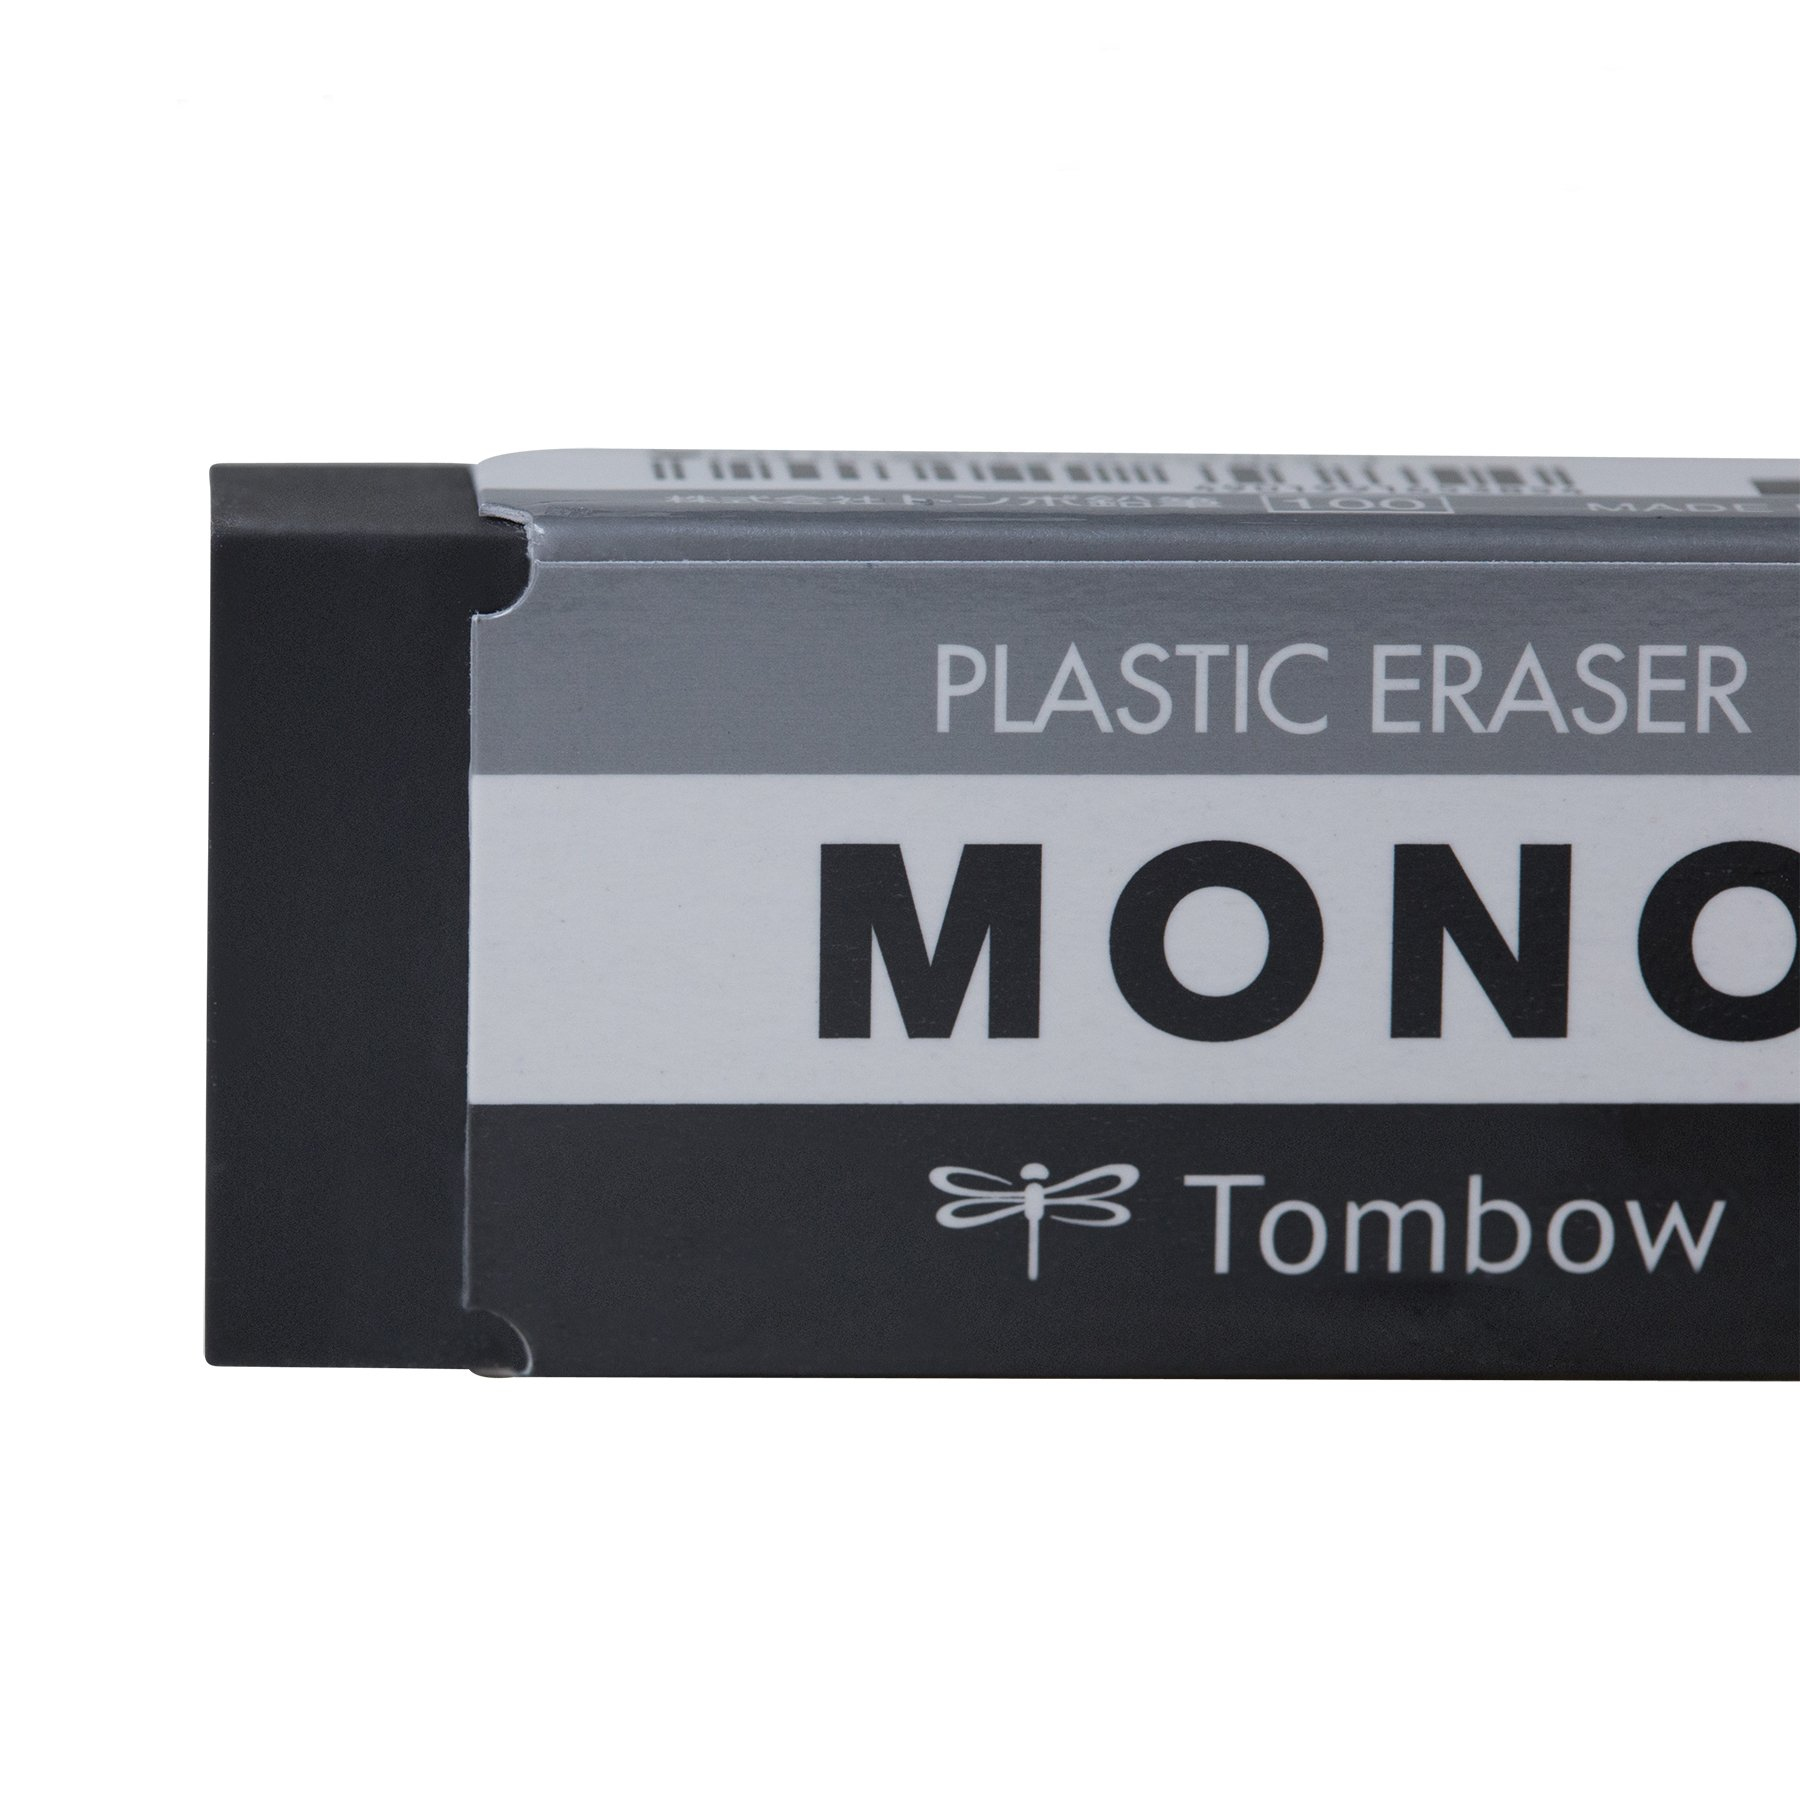 TOMBOW Mono Eraser, Black, Small, 40 PC Box, Pack, Piece by Tombow (Image #8)